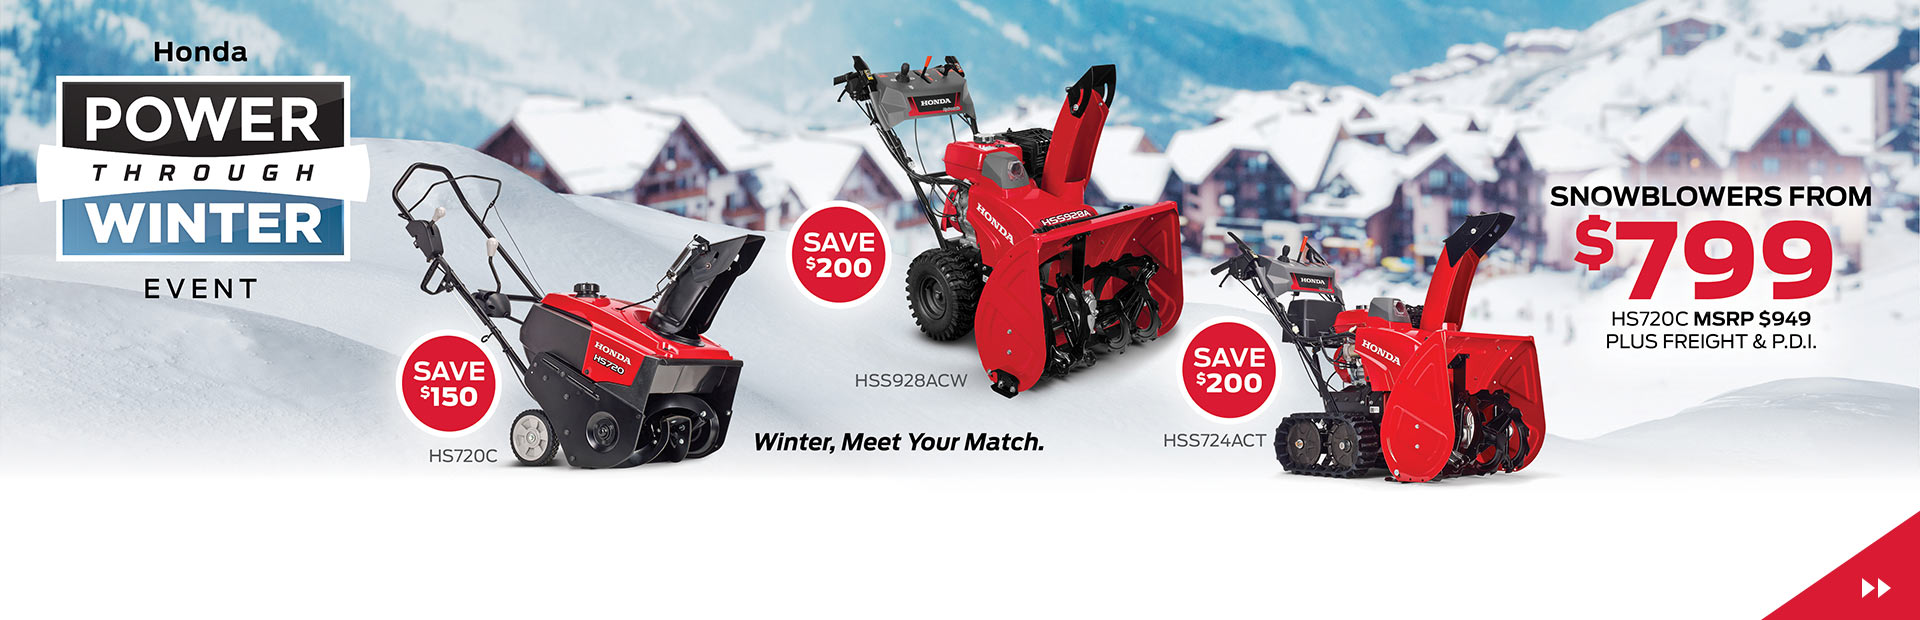 Honda Power Through Winter Event - Snowblowers from $799, SAVE Up To $200!